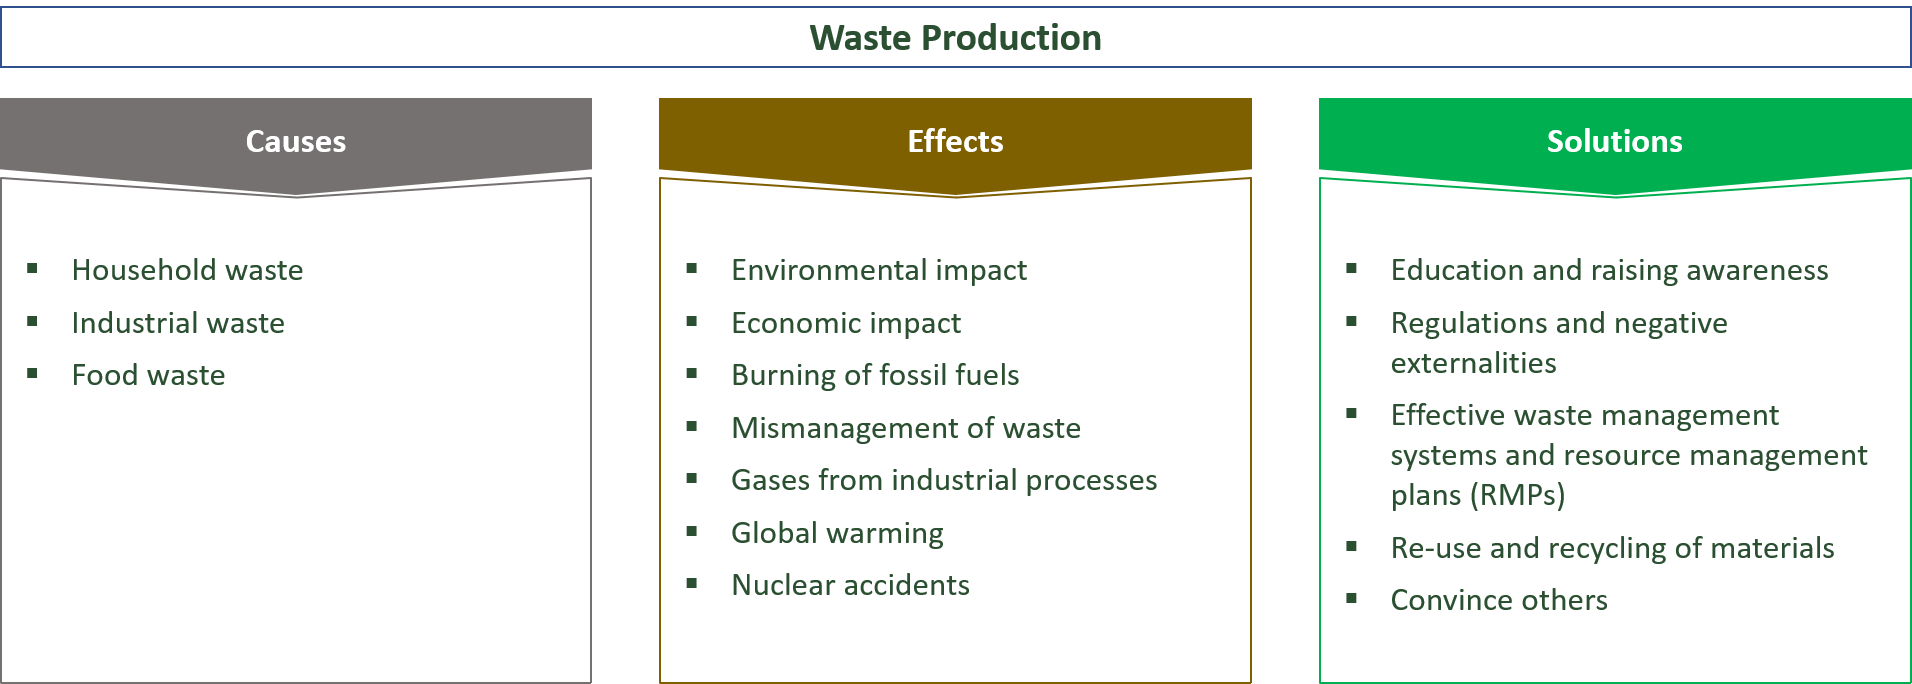 causes, effects and solutions for waste